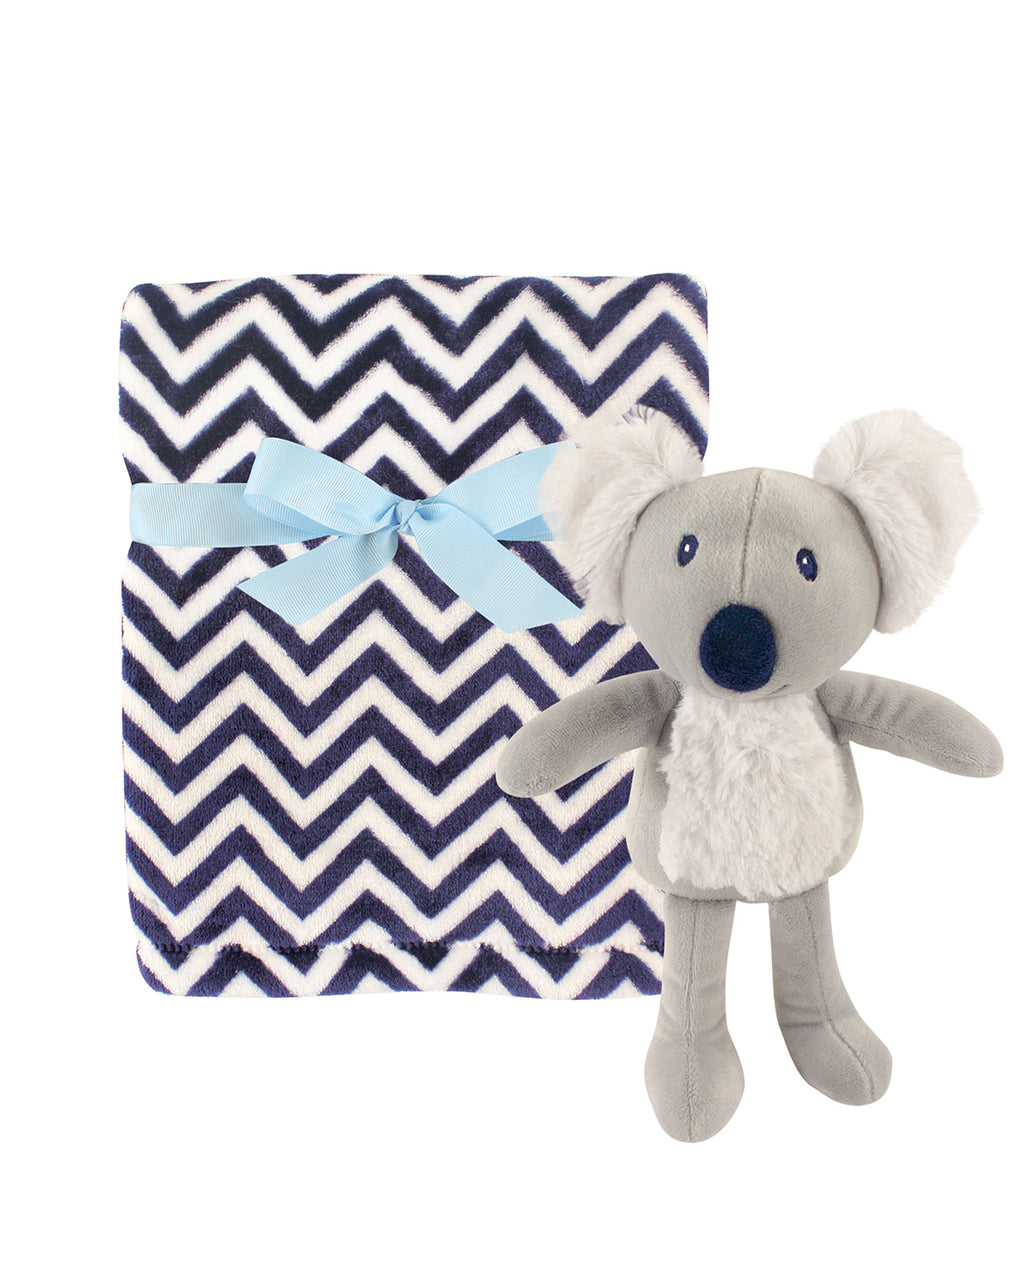 Chevron Blanket and Koala Snuggle Set